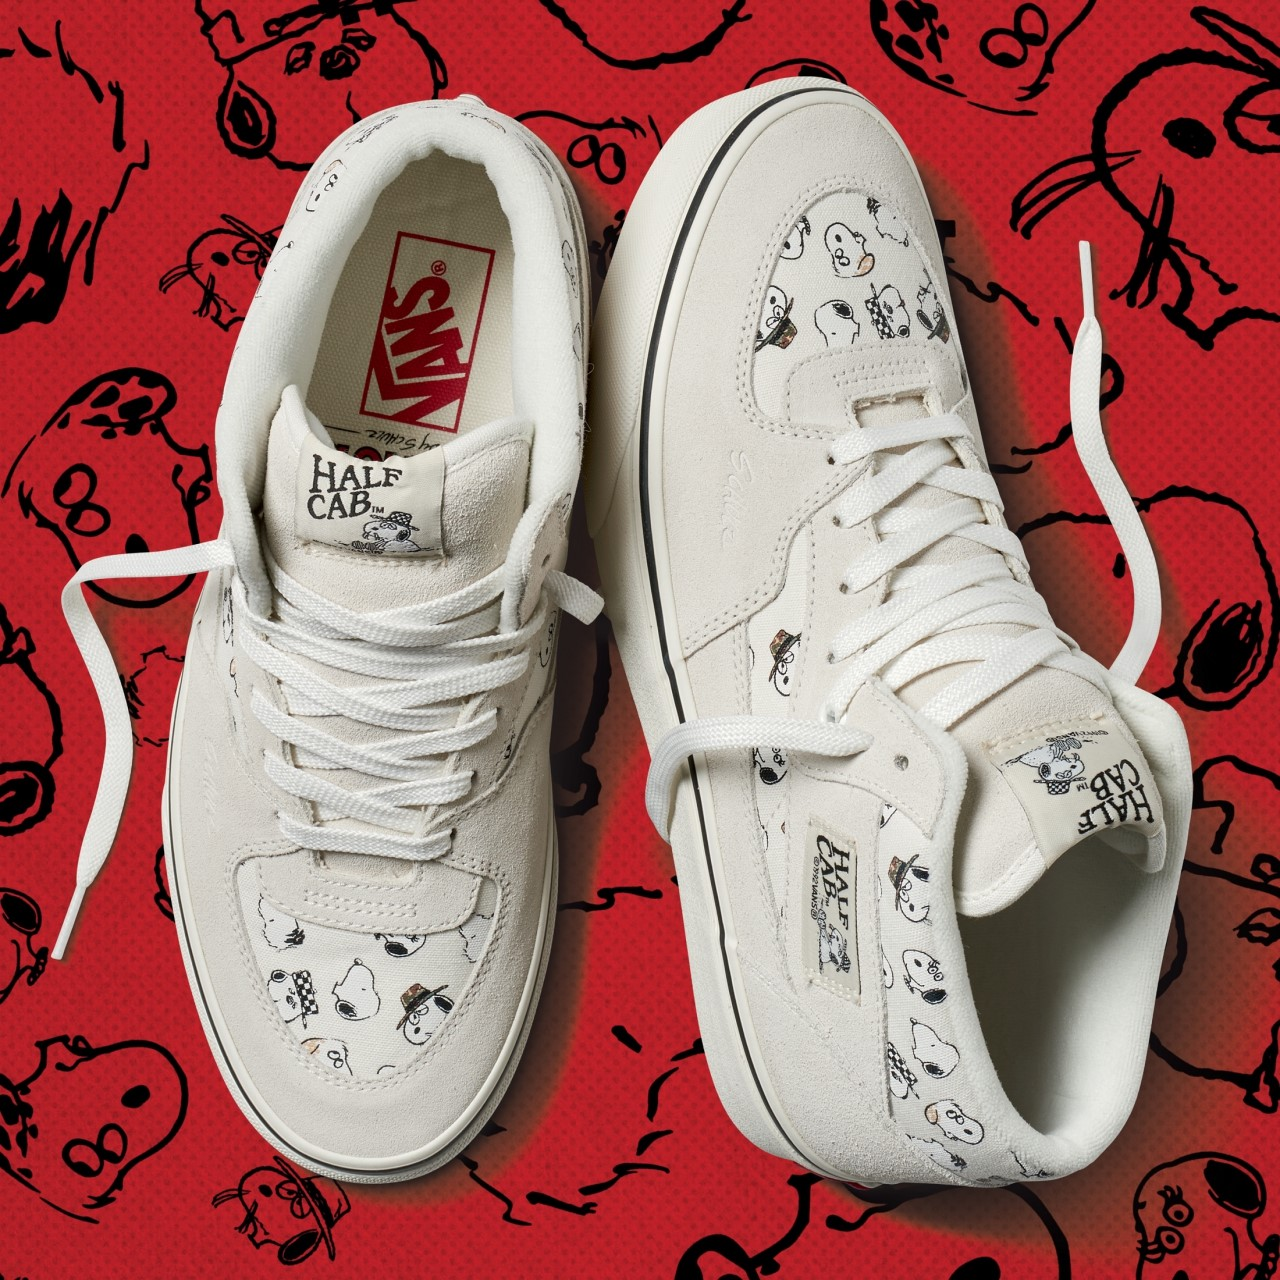 d5b7a58c5fa4ed Vans x Peanuts New Collection Are Iconic Charles M. Schulz s Original Comic  Illustrations - MASSES